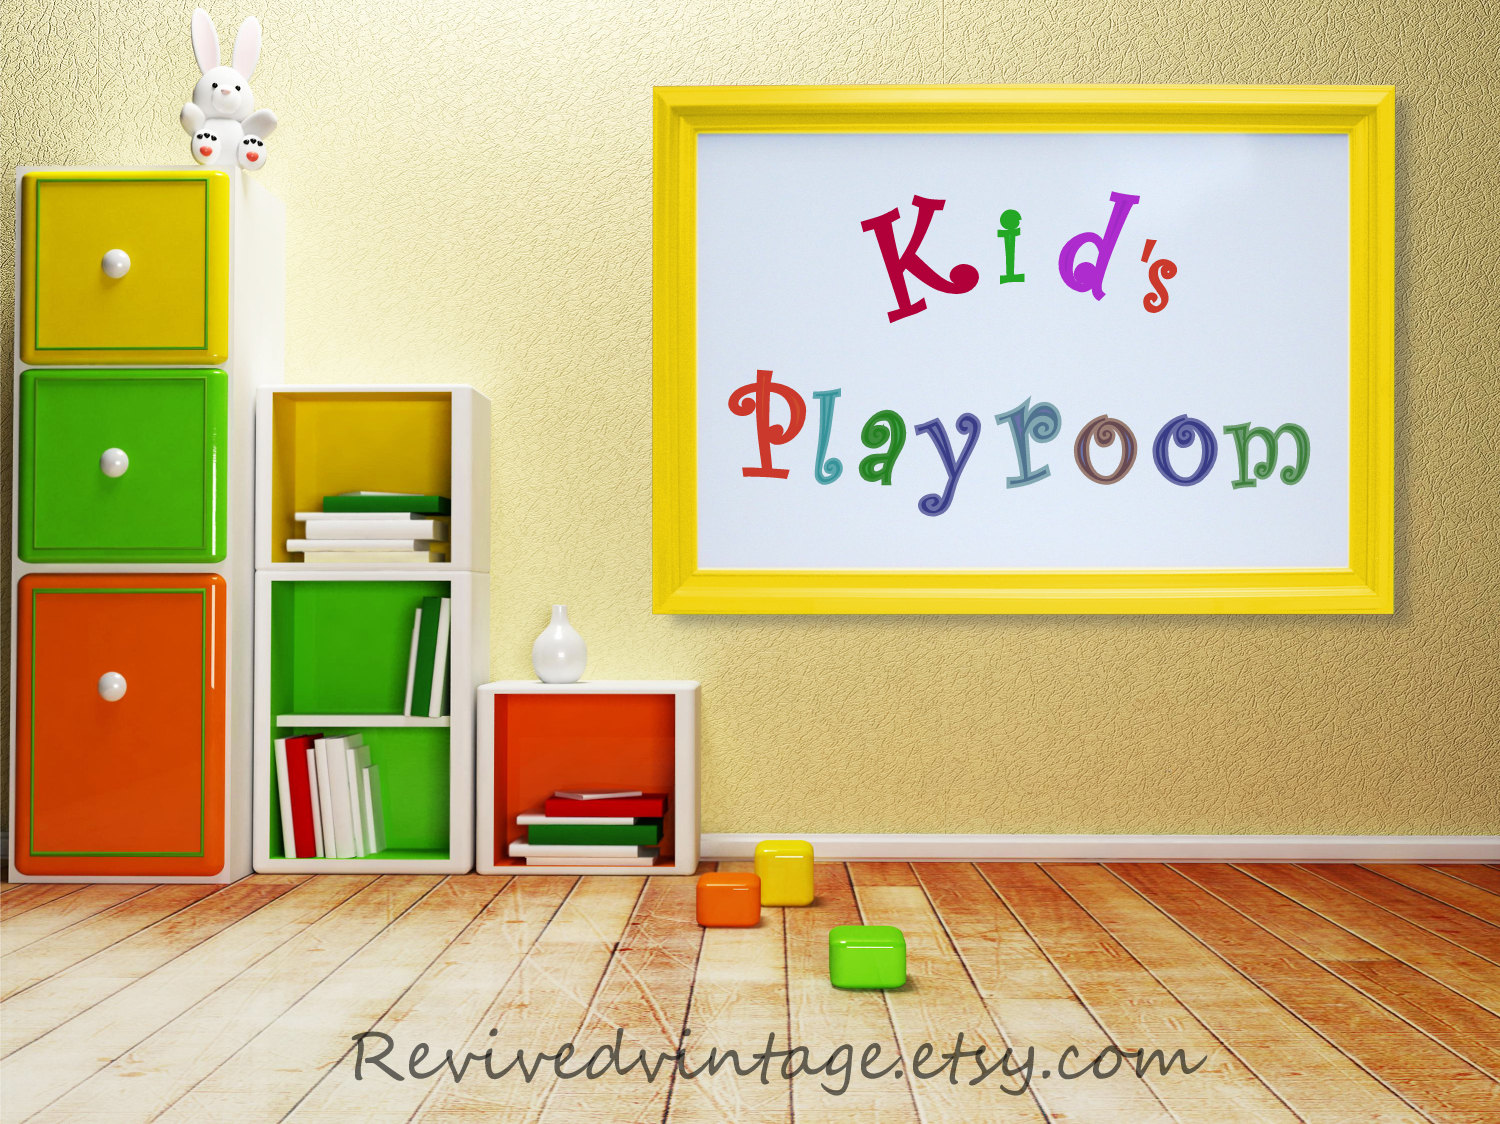 kids playroom decoration wall art decor large whiteboard. Black Bedroom Furniture Sets. Home Design Ideas